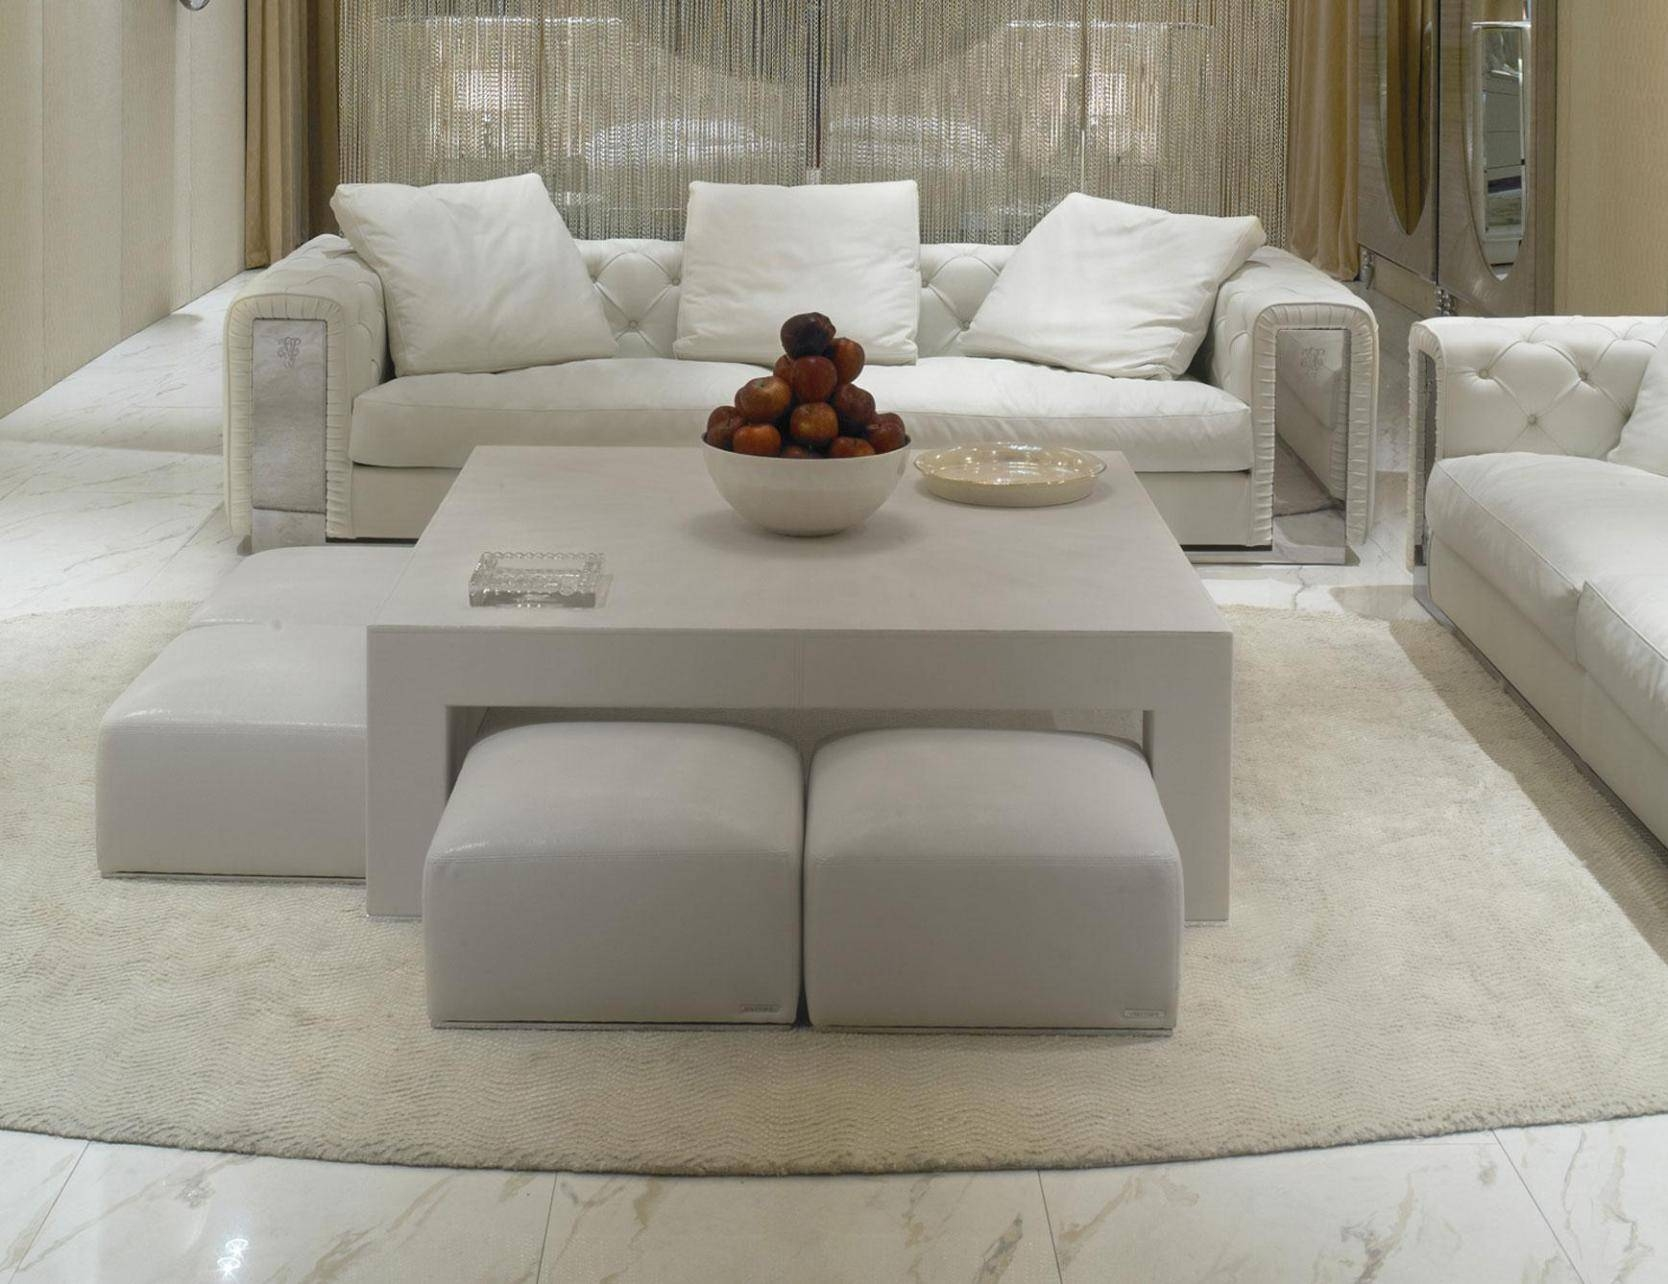 Coffee Table: Brilliant Upholstered Ottoman Coffee Table Design inside Round Upholstered Coffee Tables (Image 9 of 30)